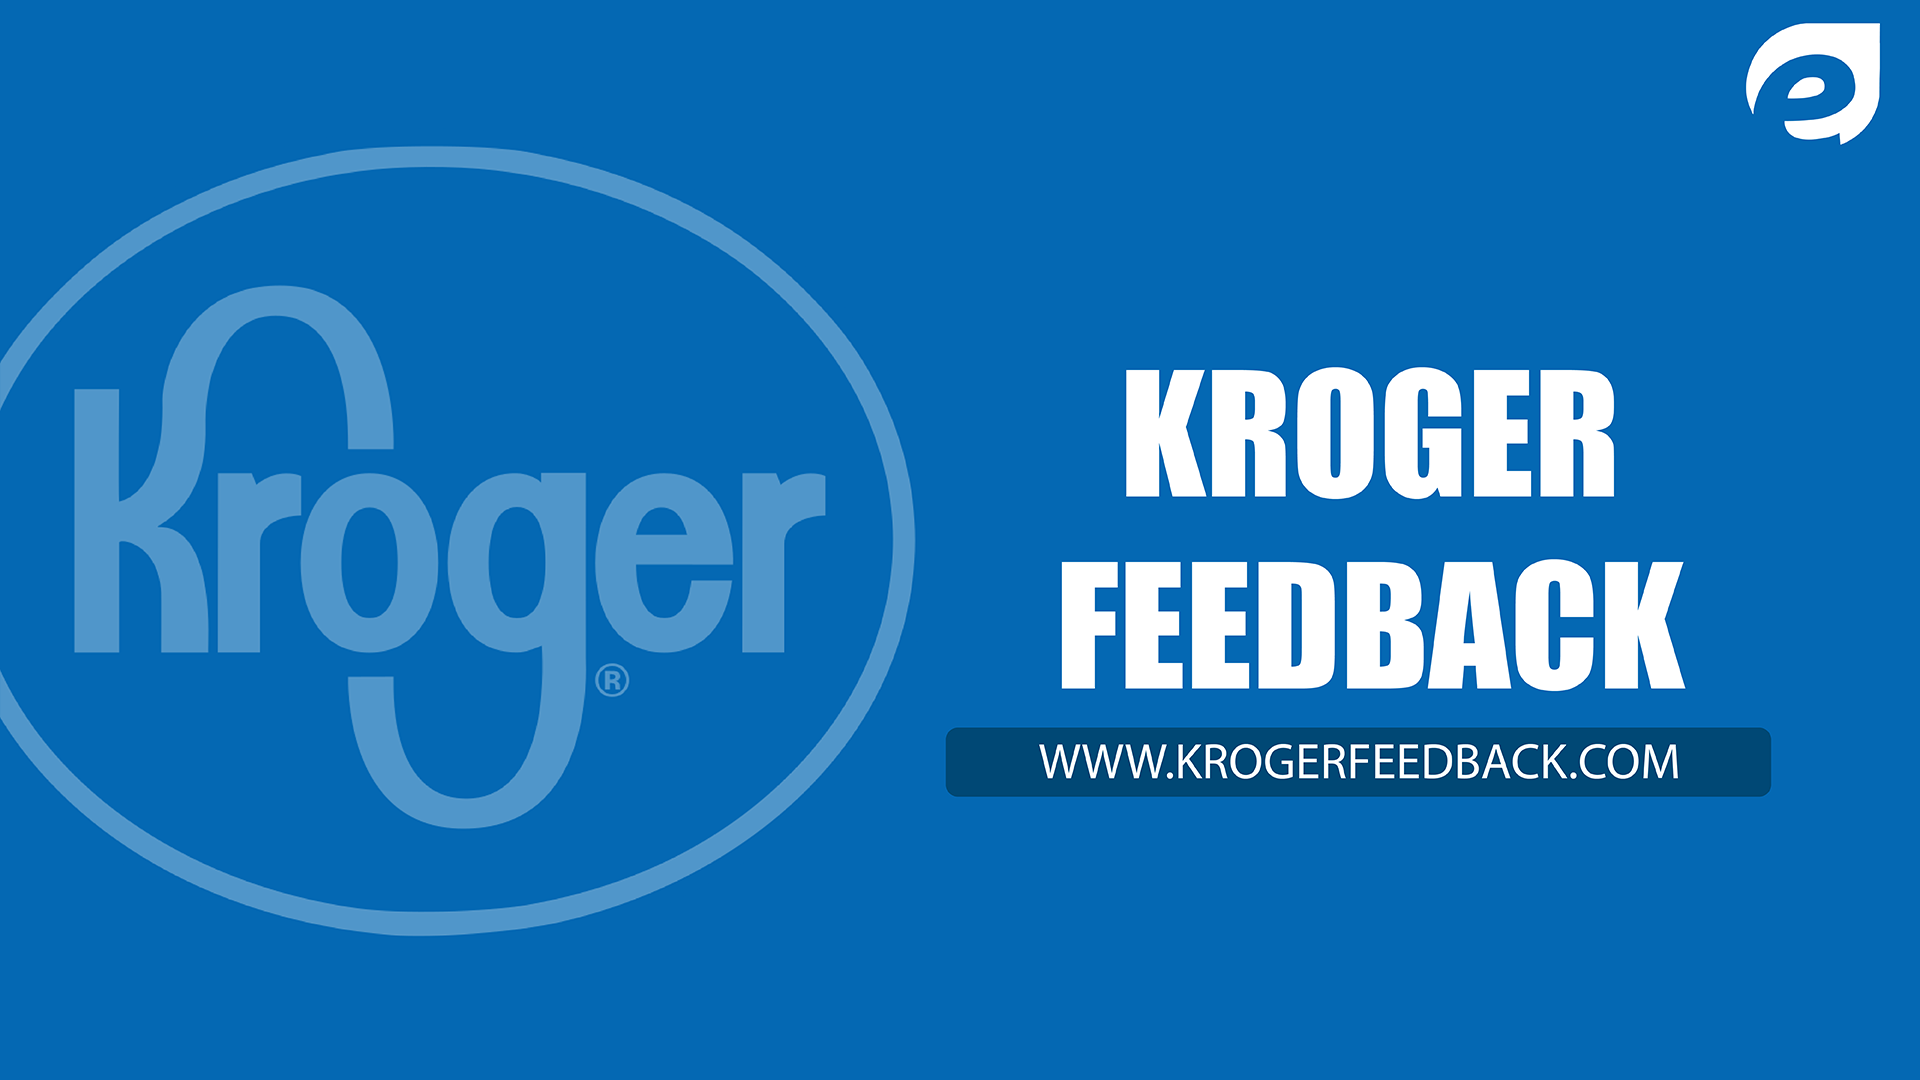 Kroger feedback fuel points sweepstakes